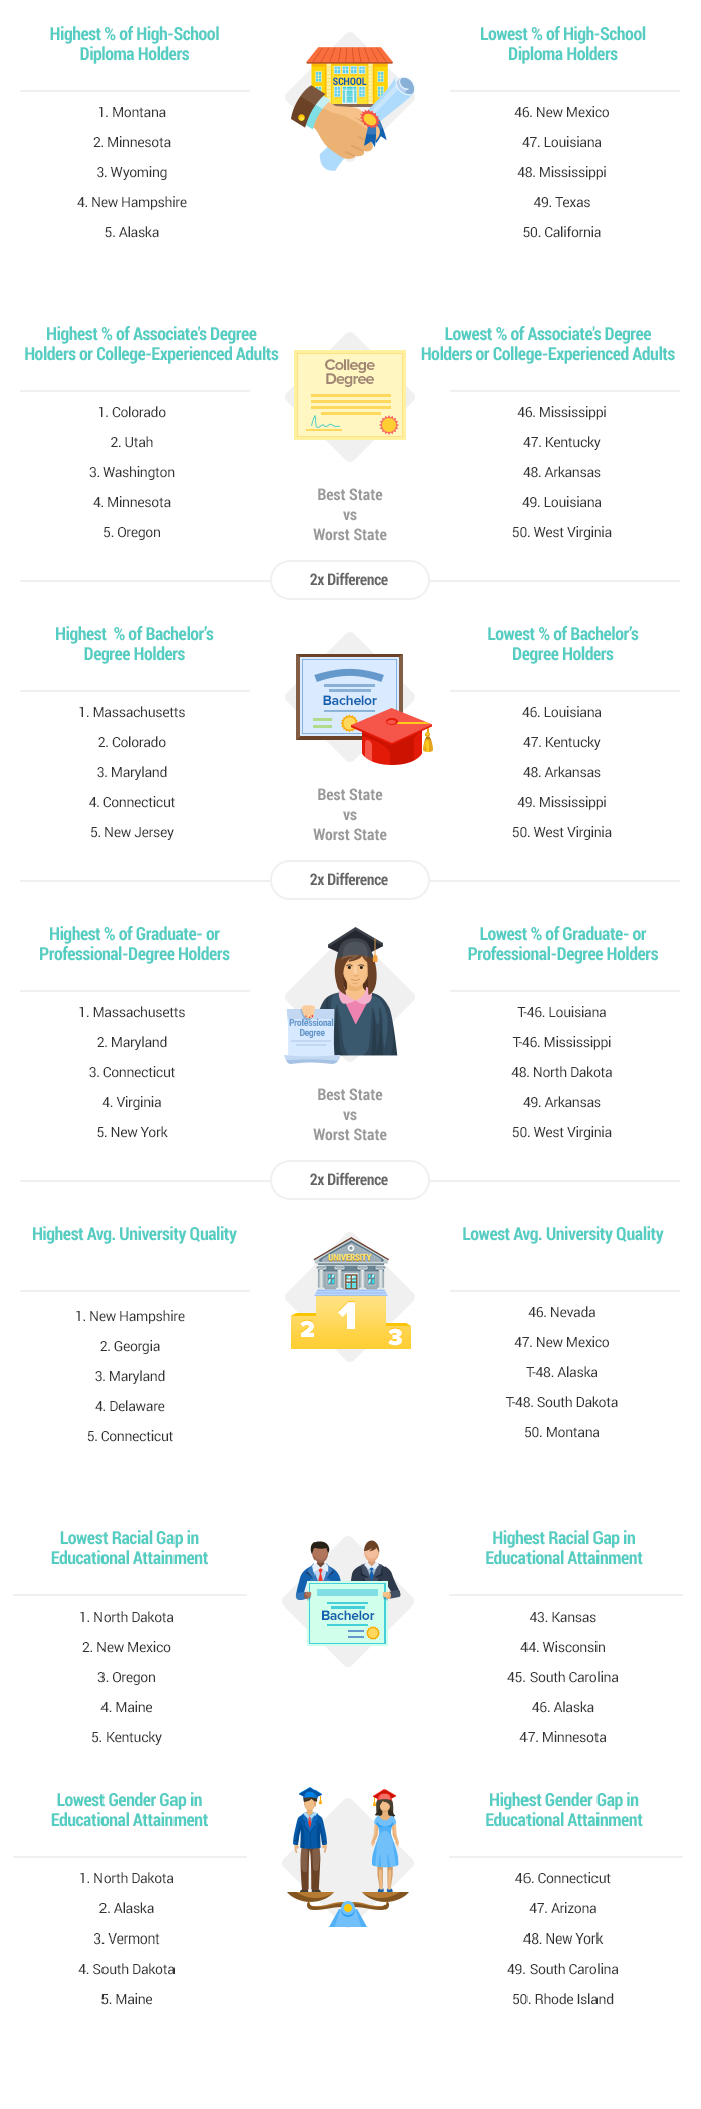 Artwork-Most-Educated-States-report-2017-v2